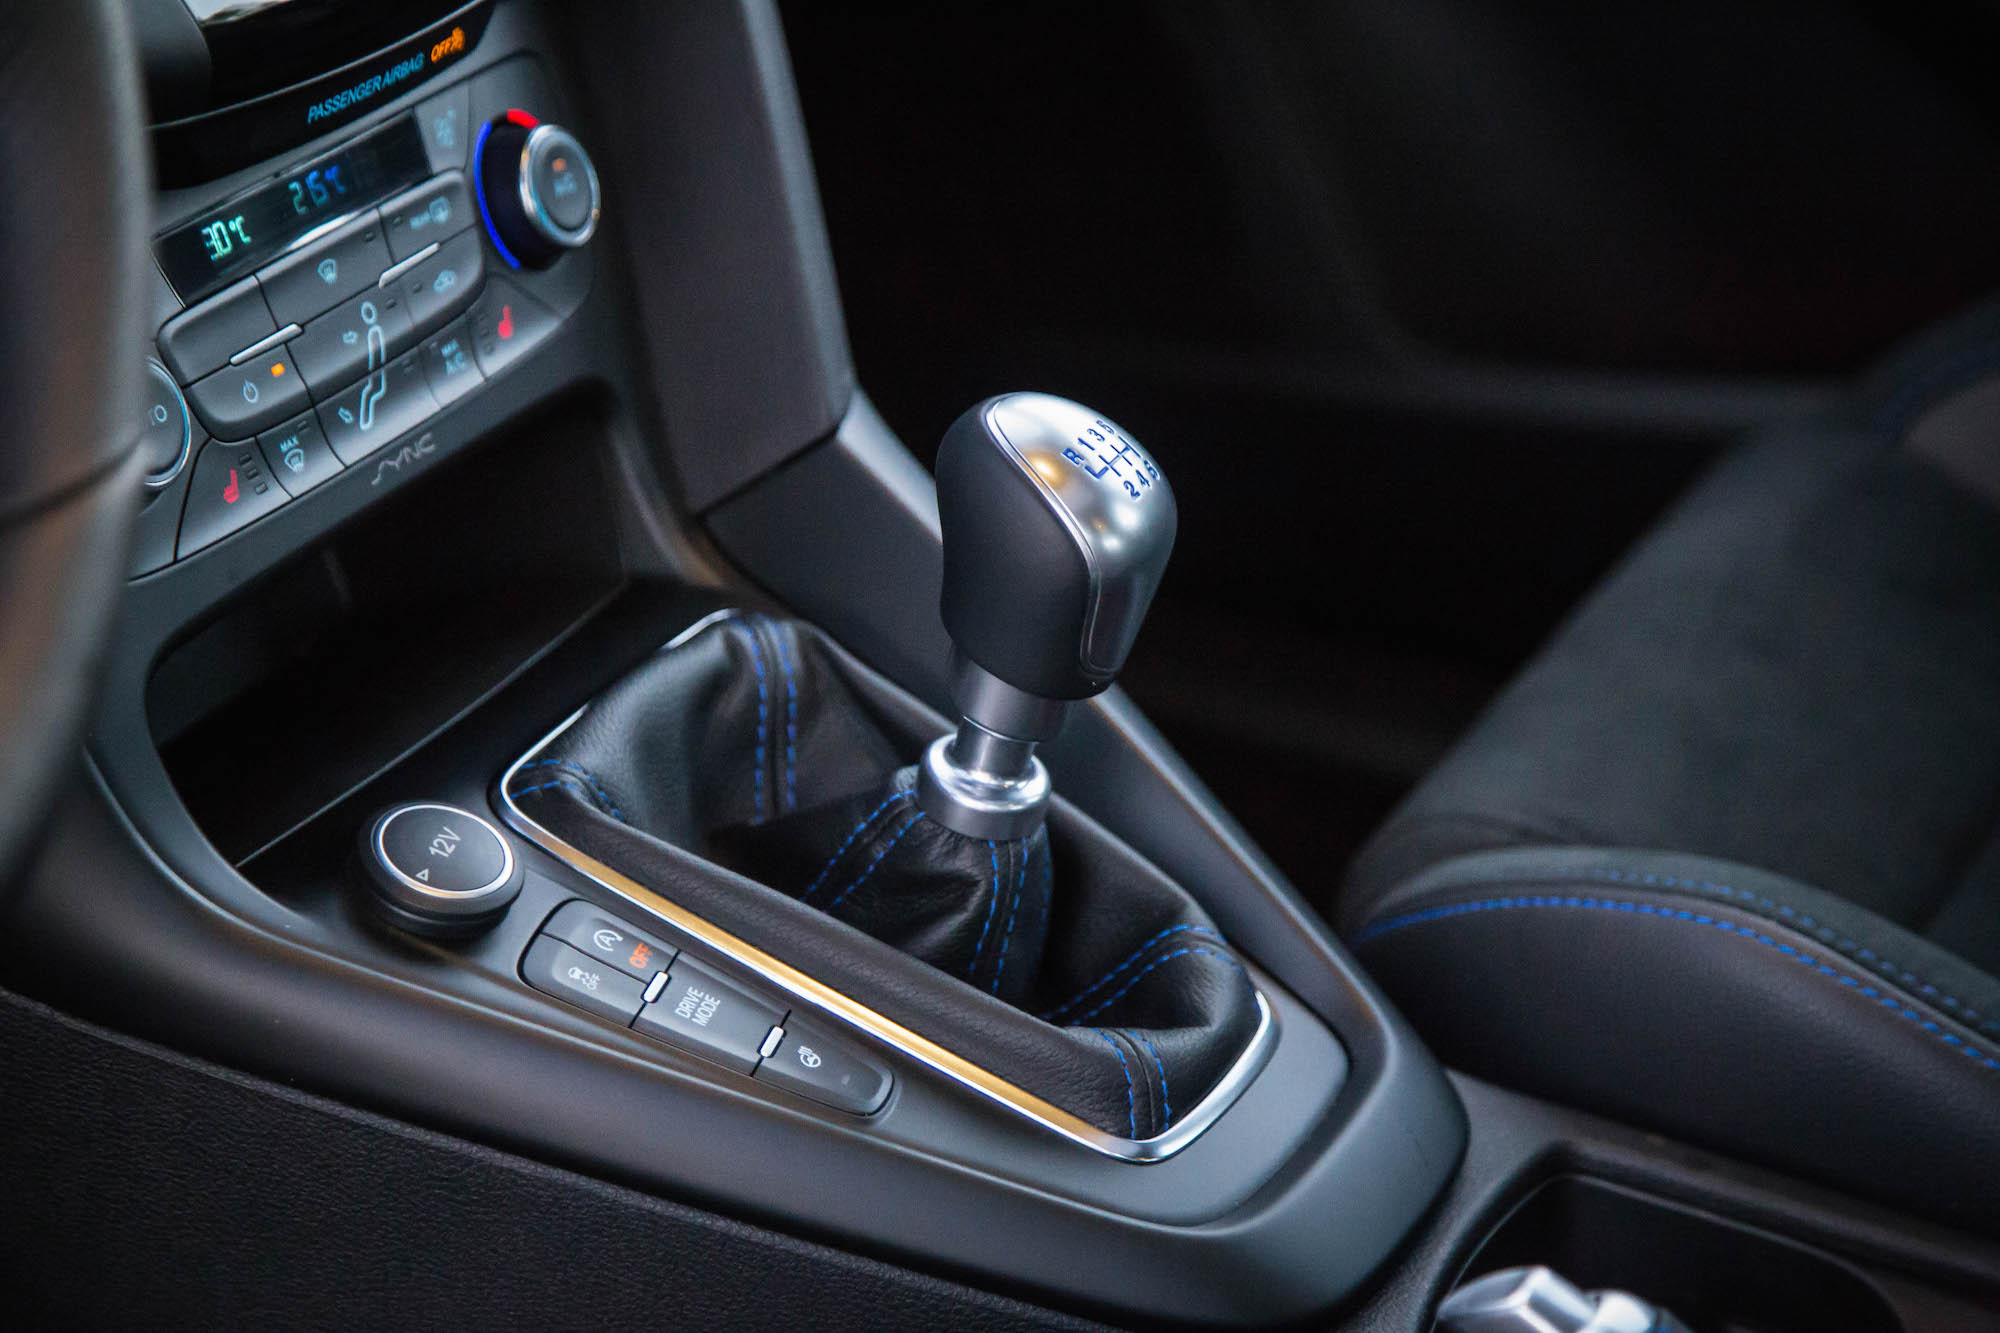 ford-focus-rs-gear-shifter.jpg